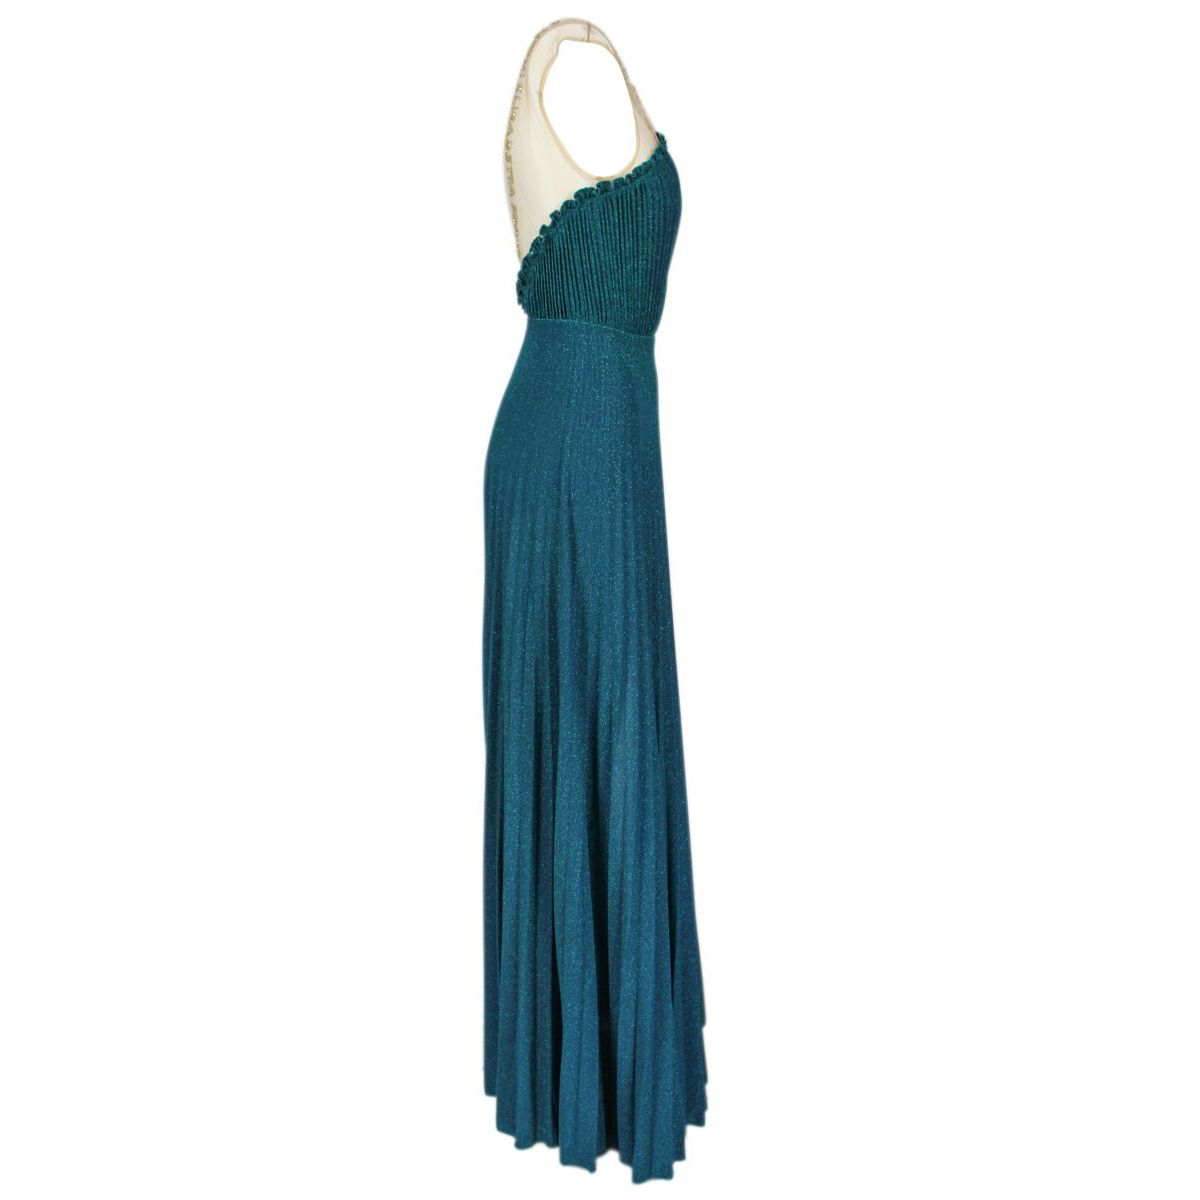 Long pleated lurex dress with belt Teal Elisabetta Franchi